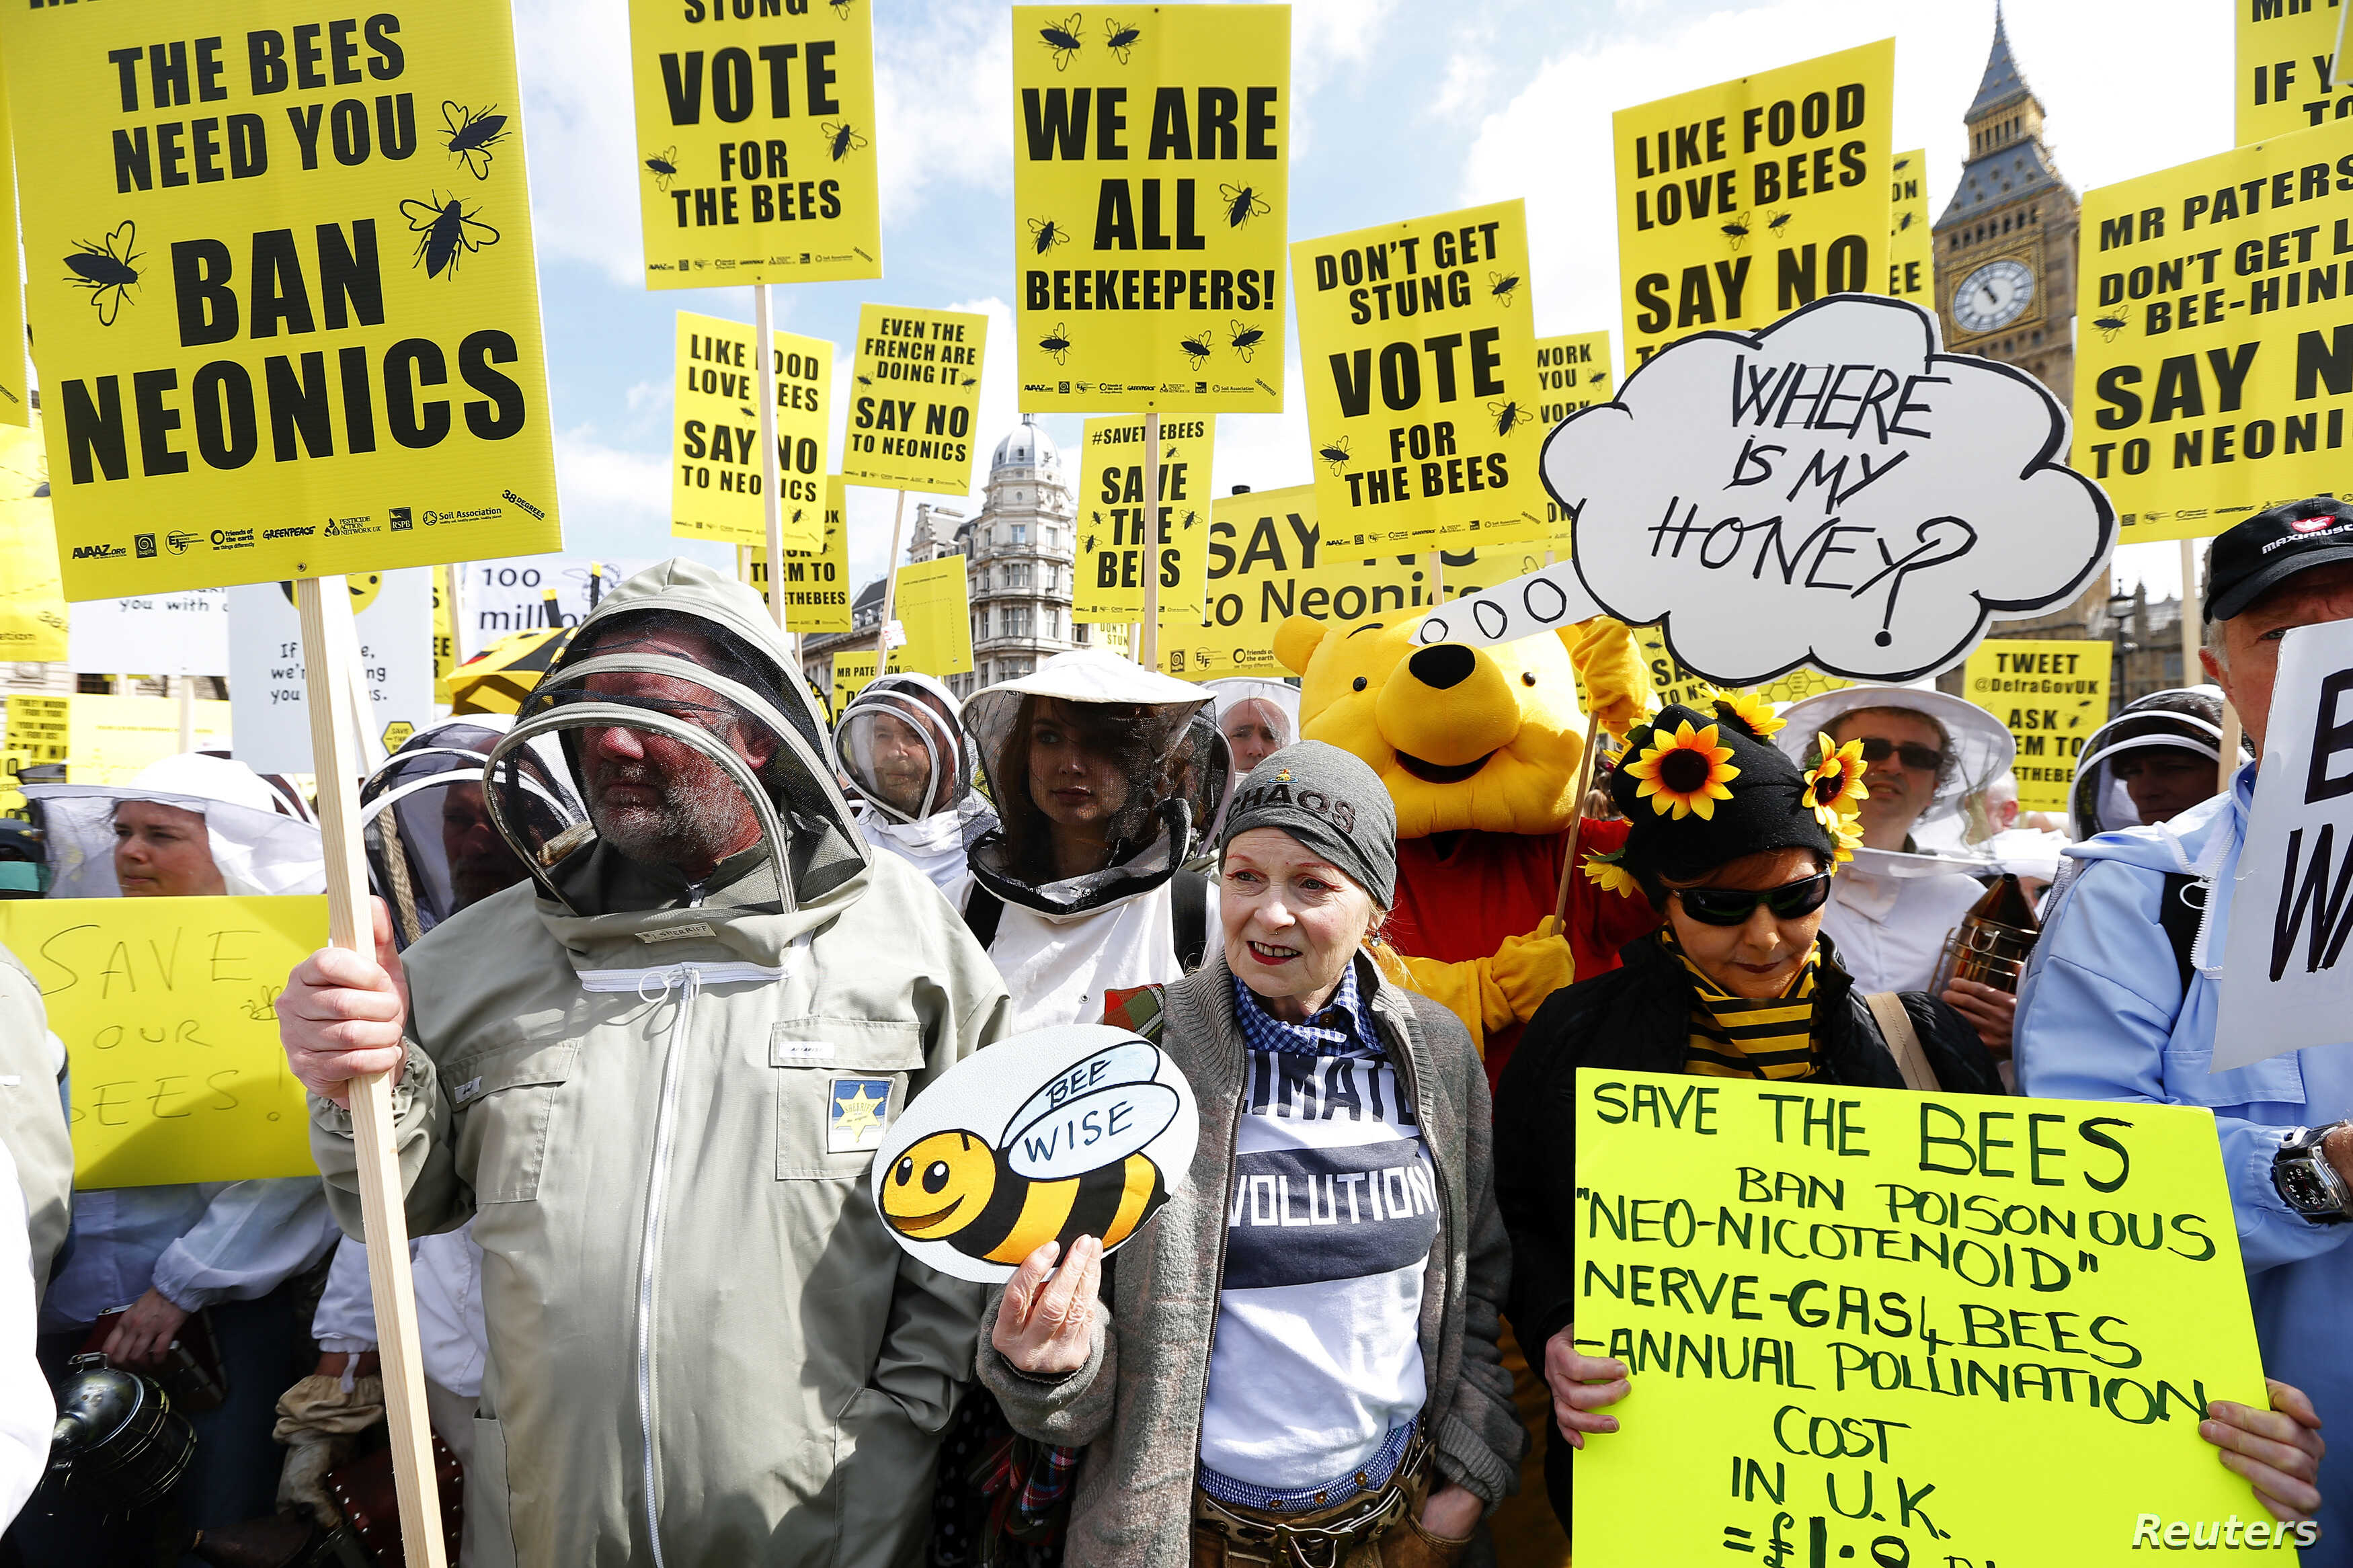 Top British Fashion Designers Create Buzz At London Bee Protest Voice Of America English